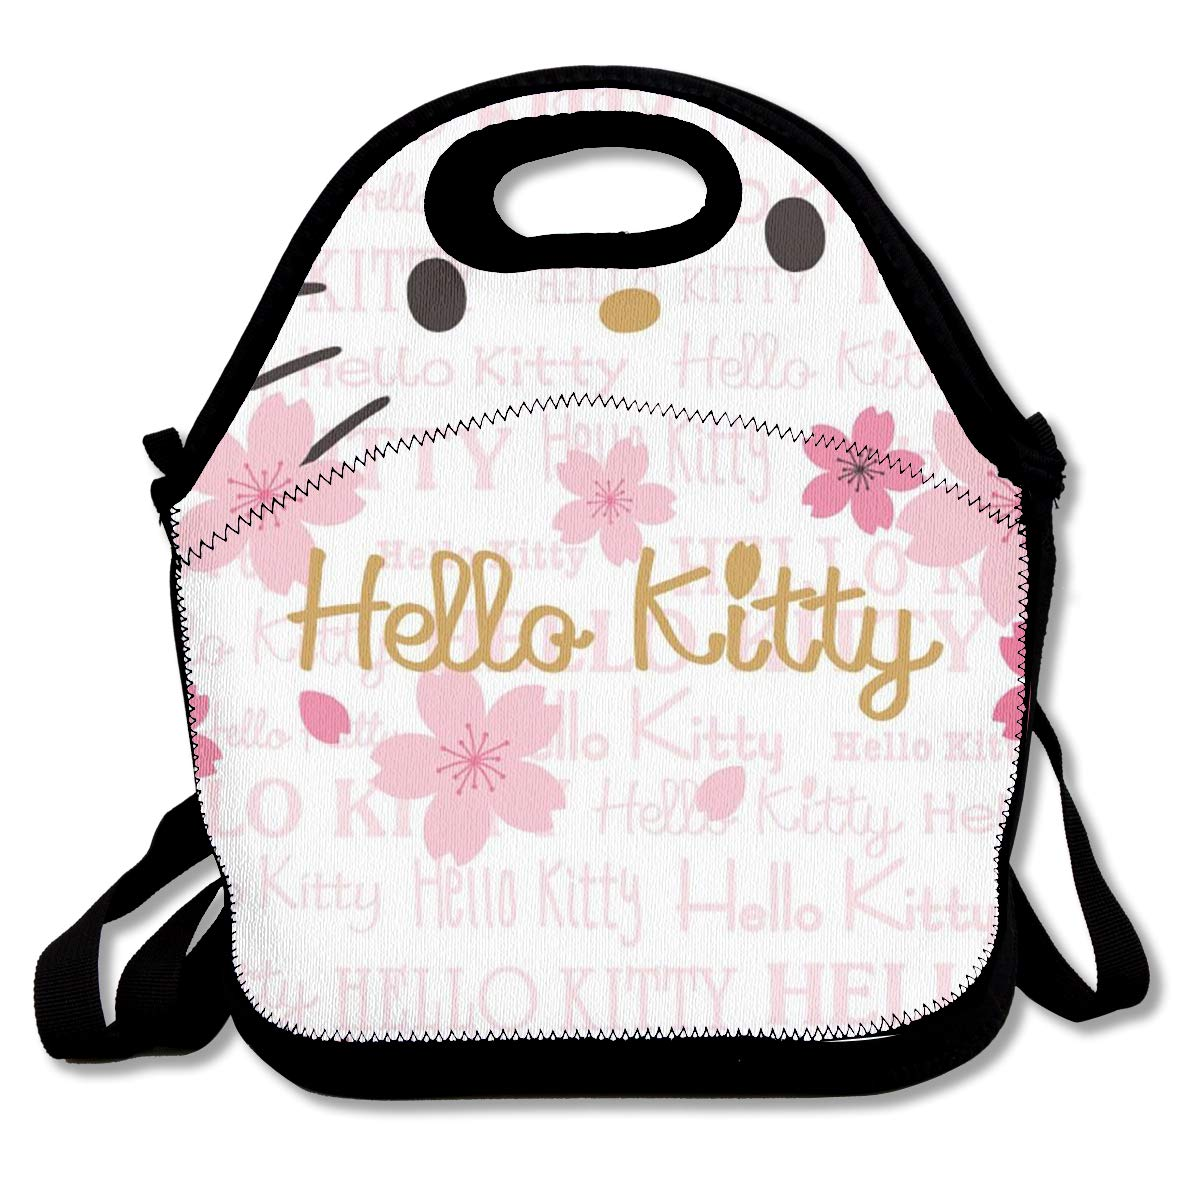 c45d3b2c96 Amazon.com - LIUYAN Personalized Lunch Bags Hello Kitty Face Handbag with  Adjustable Shoulder Strap for Work School Meal Prep -